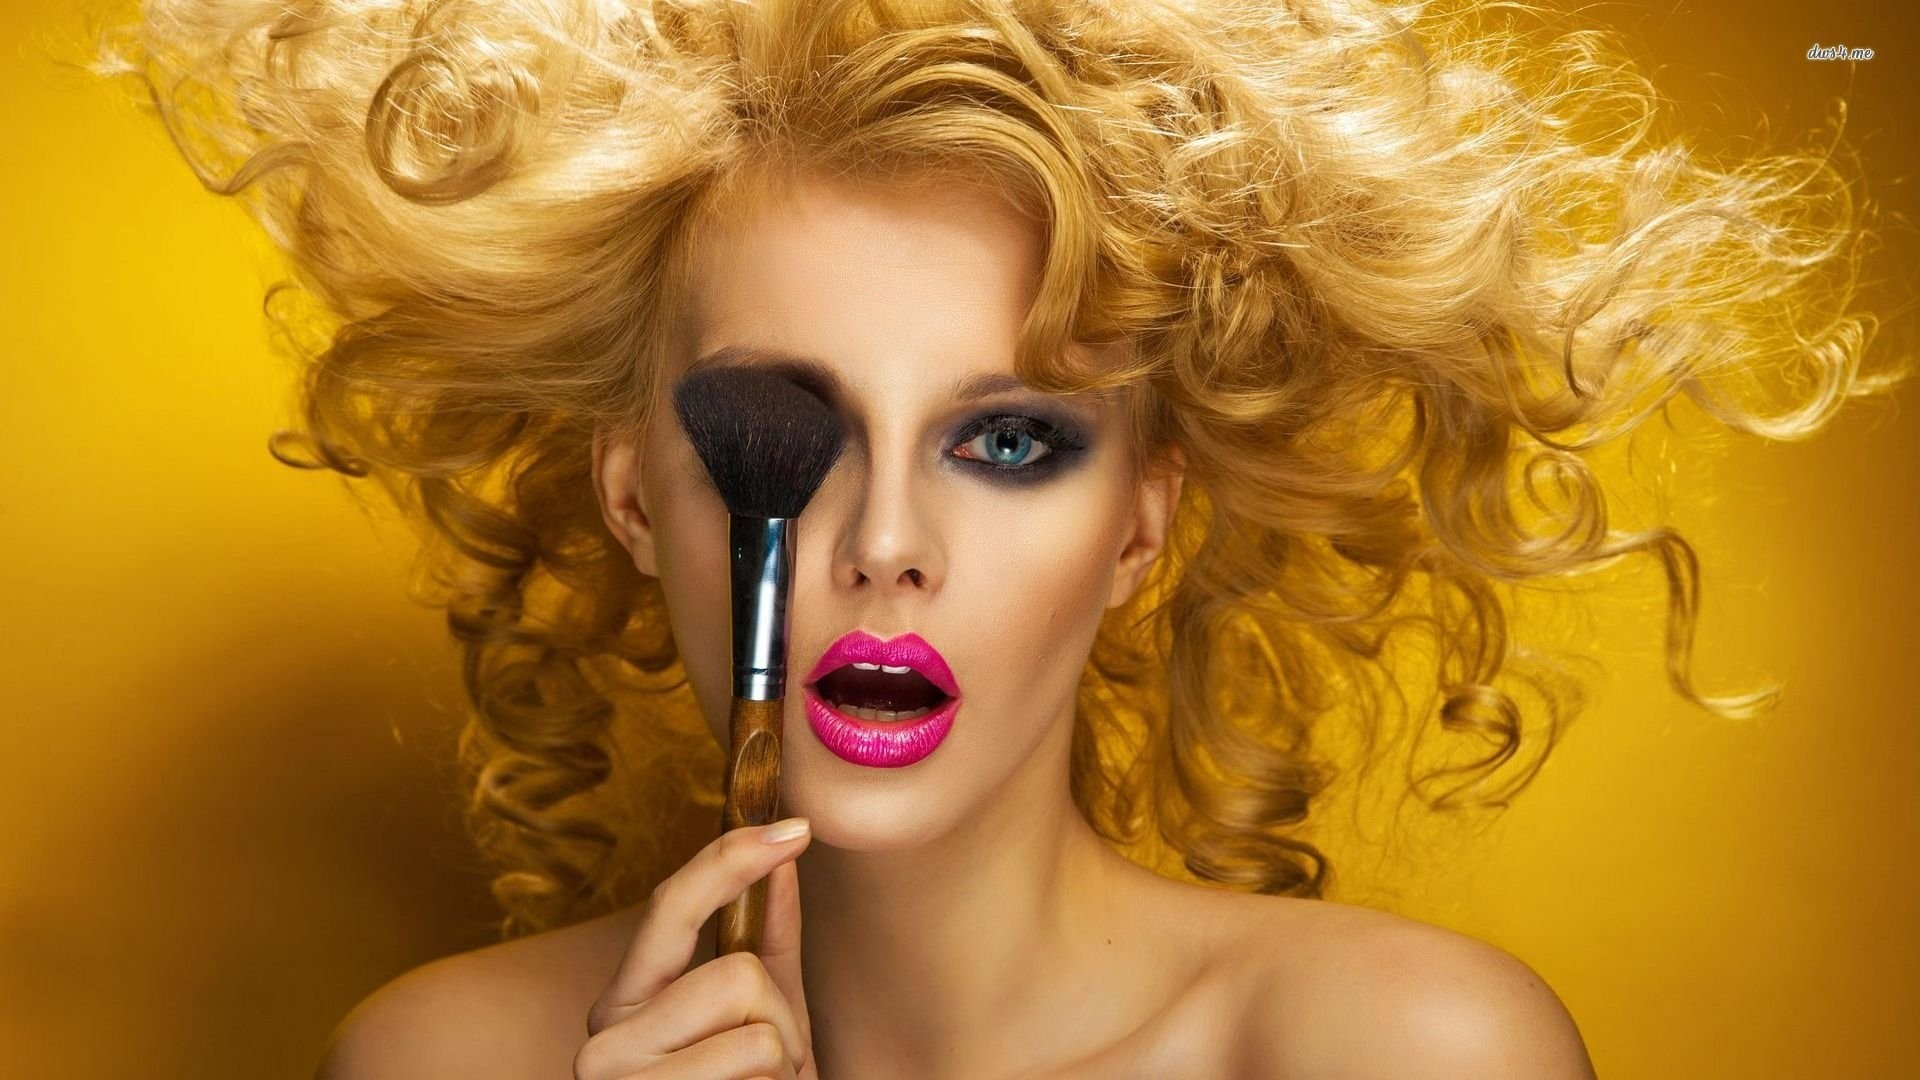 Makeup Full HD Wallpaper